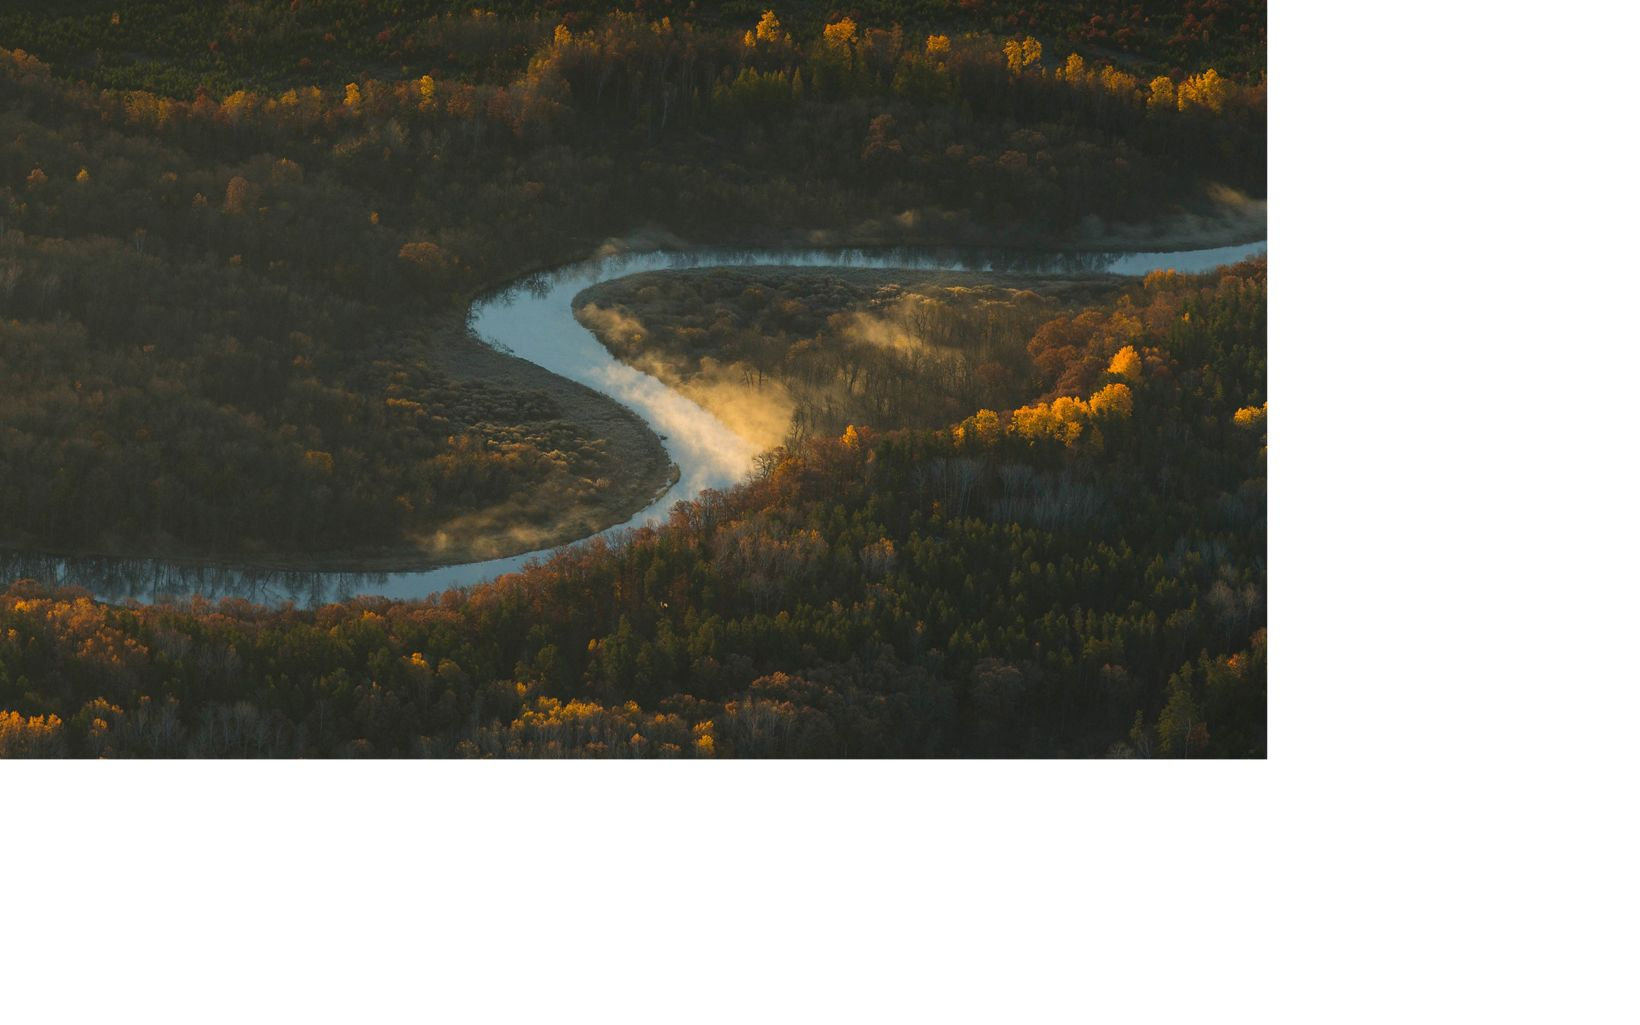 Aerial of the Crow Wing River near Huntersville, Minnesota.